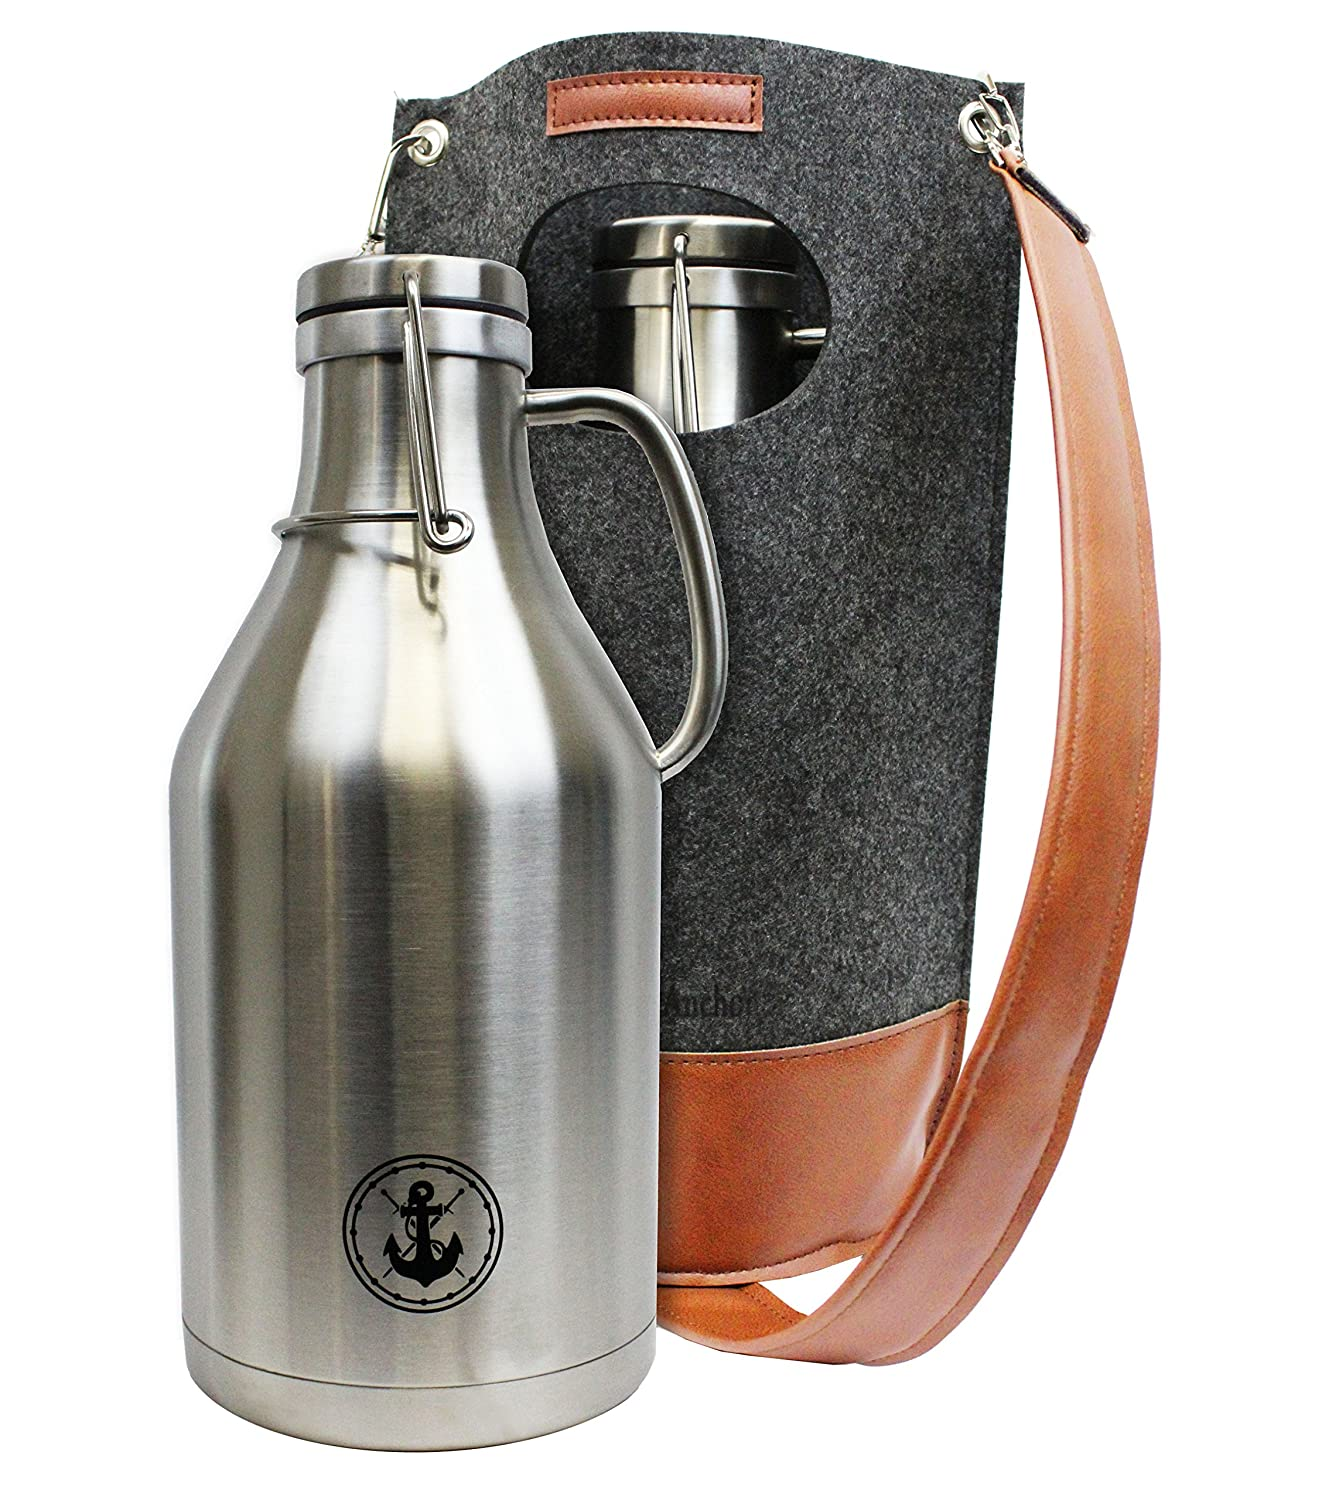 64oz Insulated Steel Beer Growler with Wool Carrying Case (stainless steel, double walled)